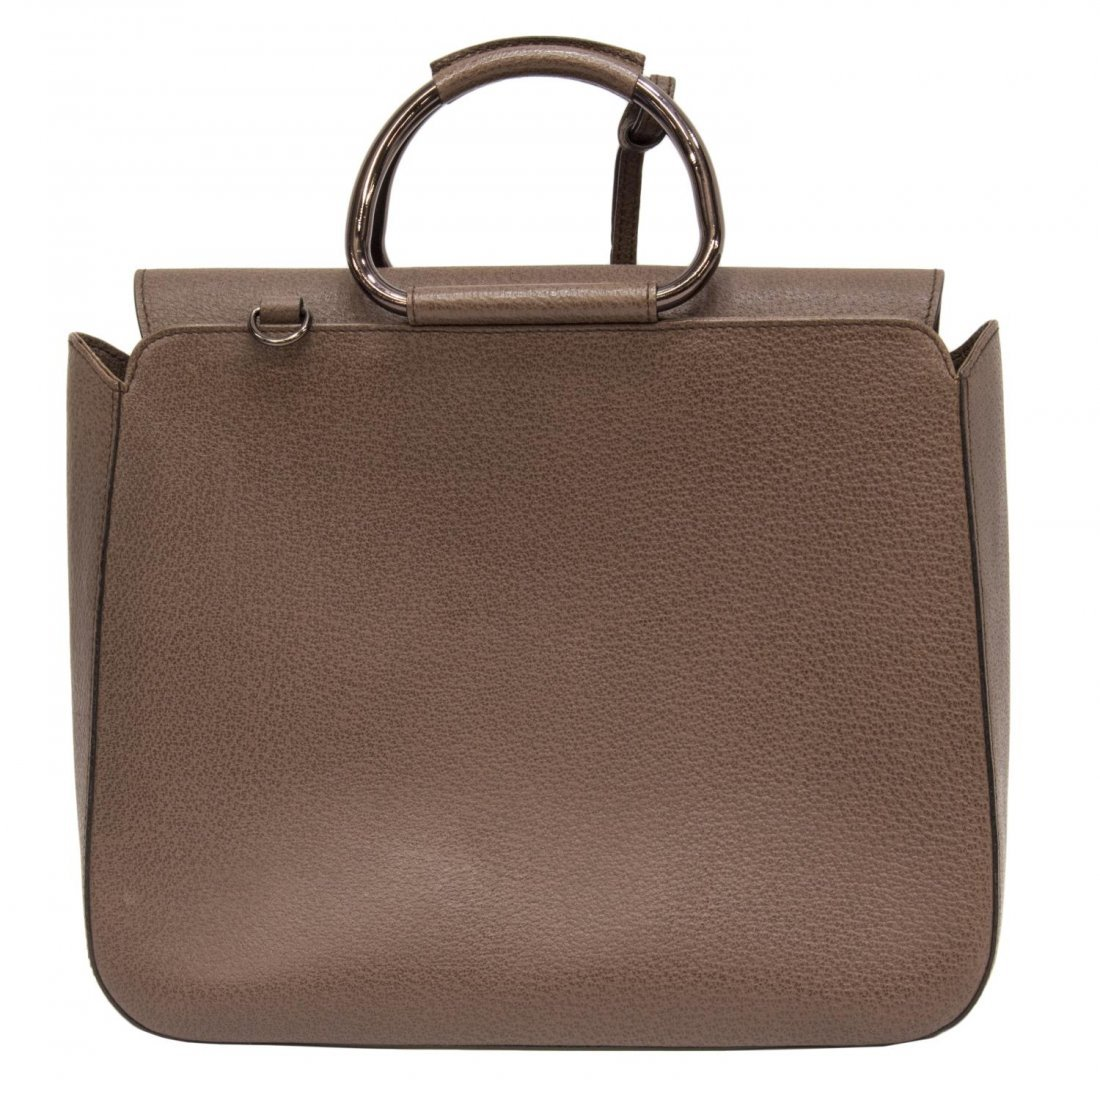 GUCCI BROWN SMALL GRAINED LEATHER HANDBAG - 2